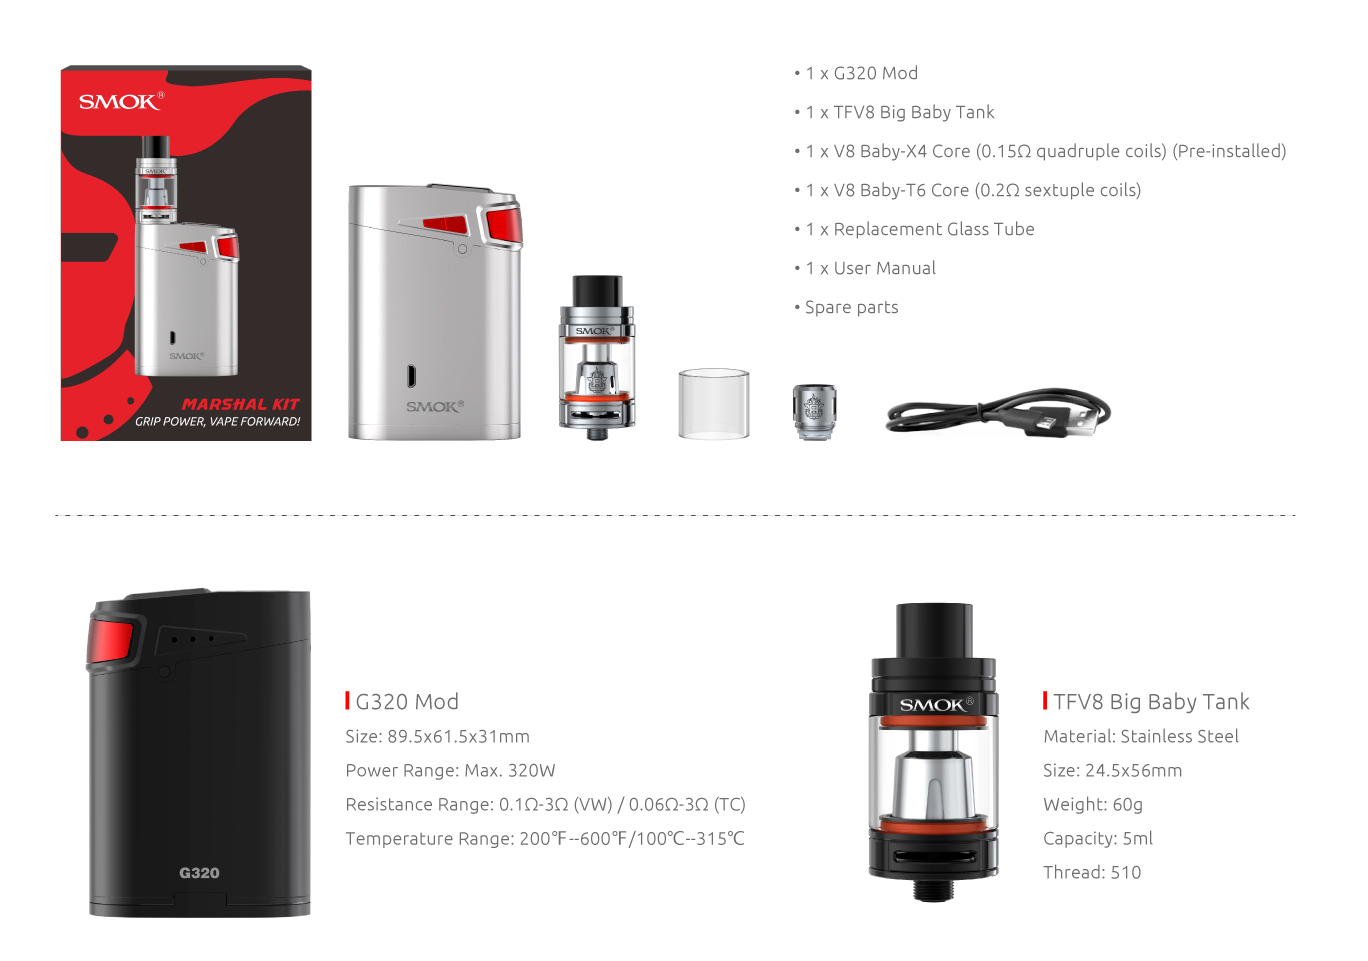 SMOK Marshal G320 Kit - Includes